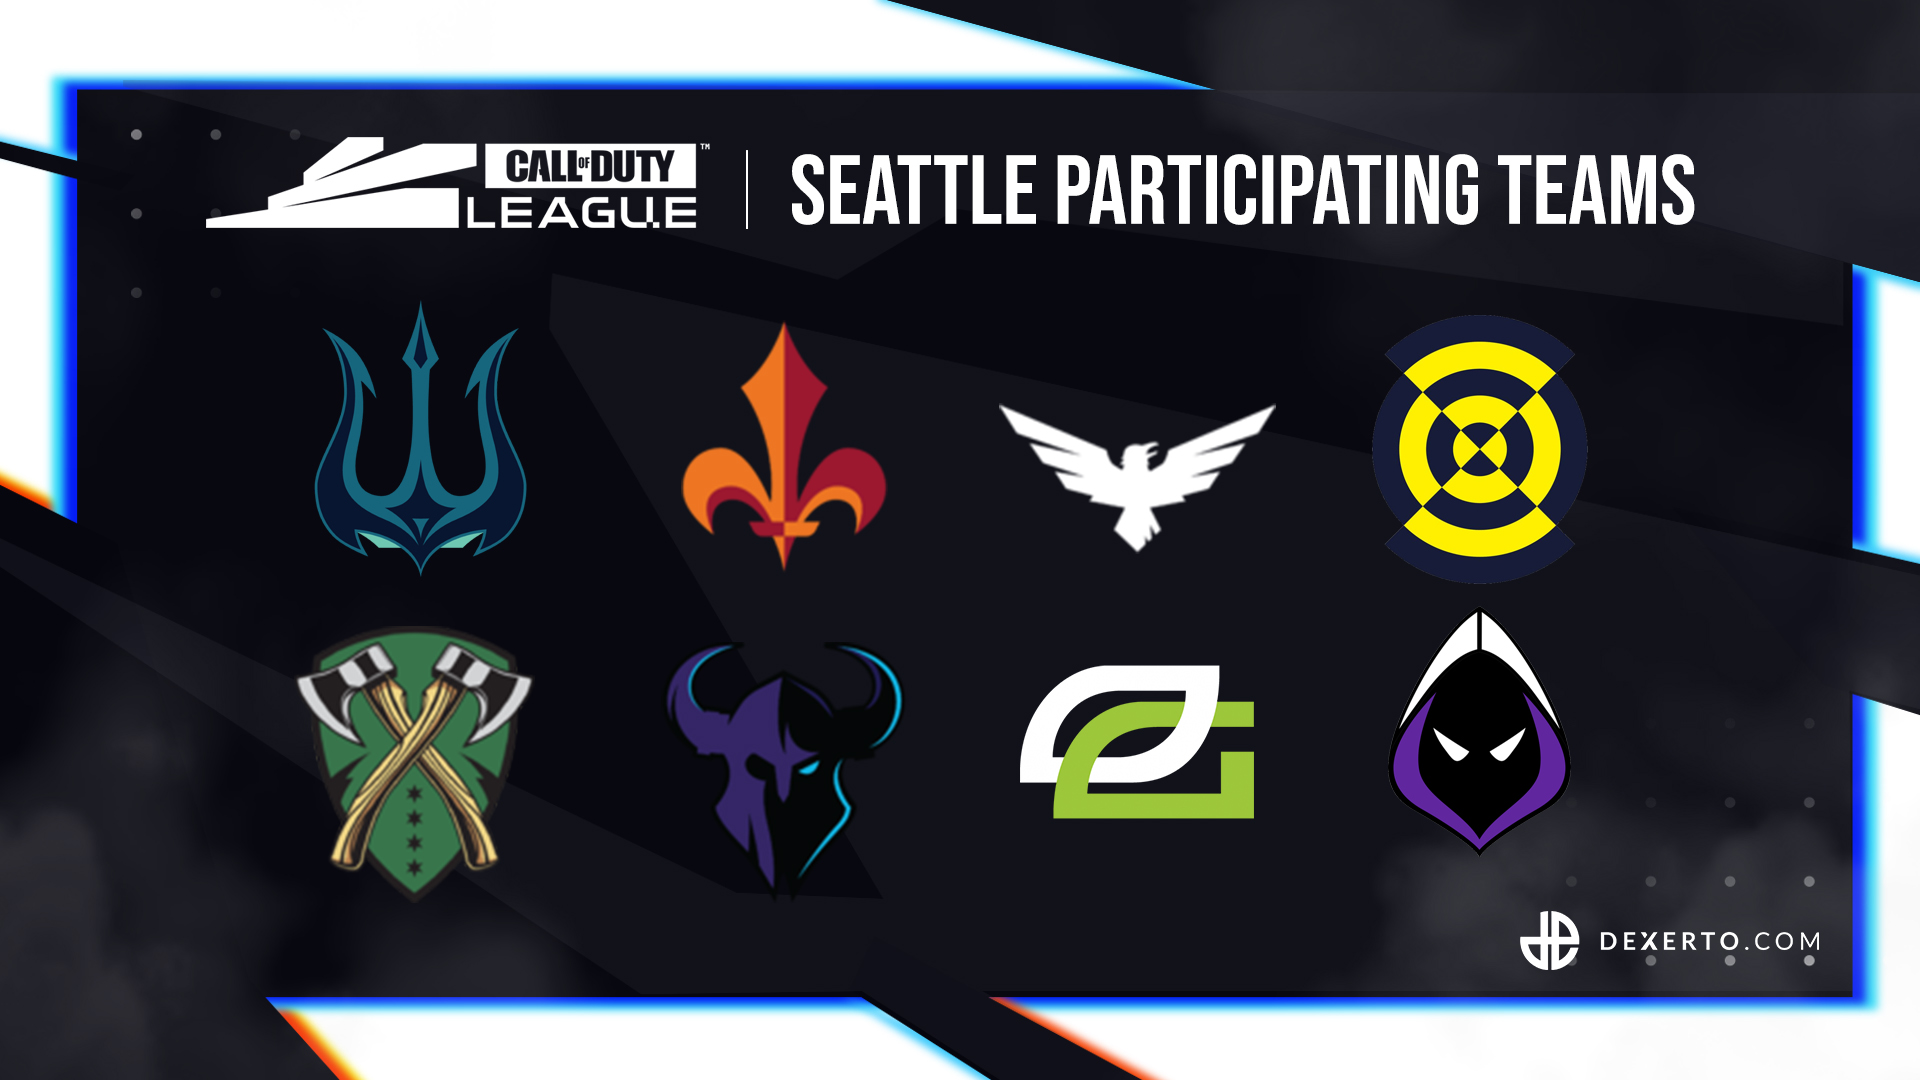 CDL Seattle participating teams.